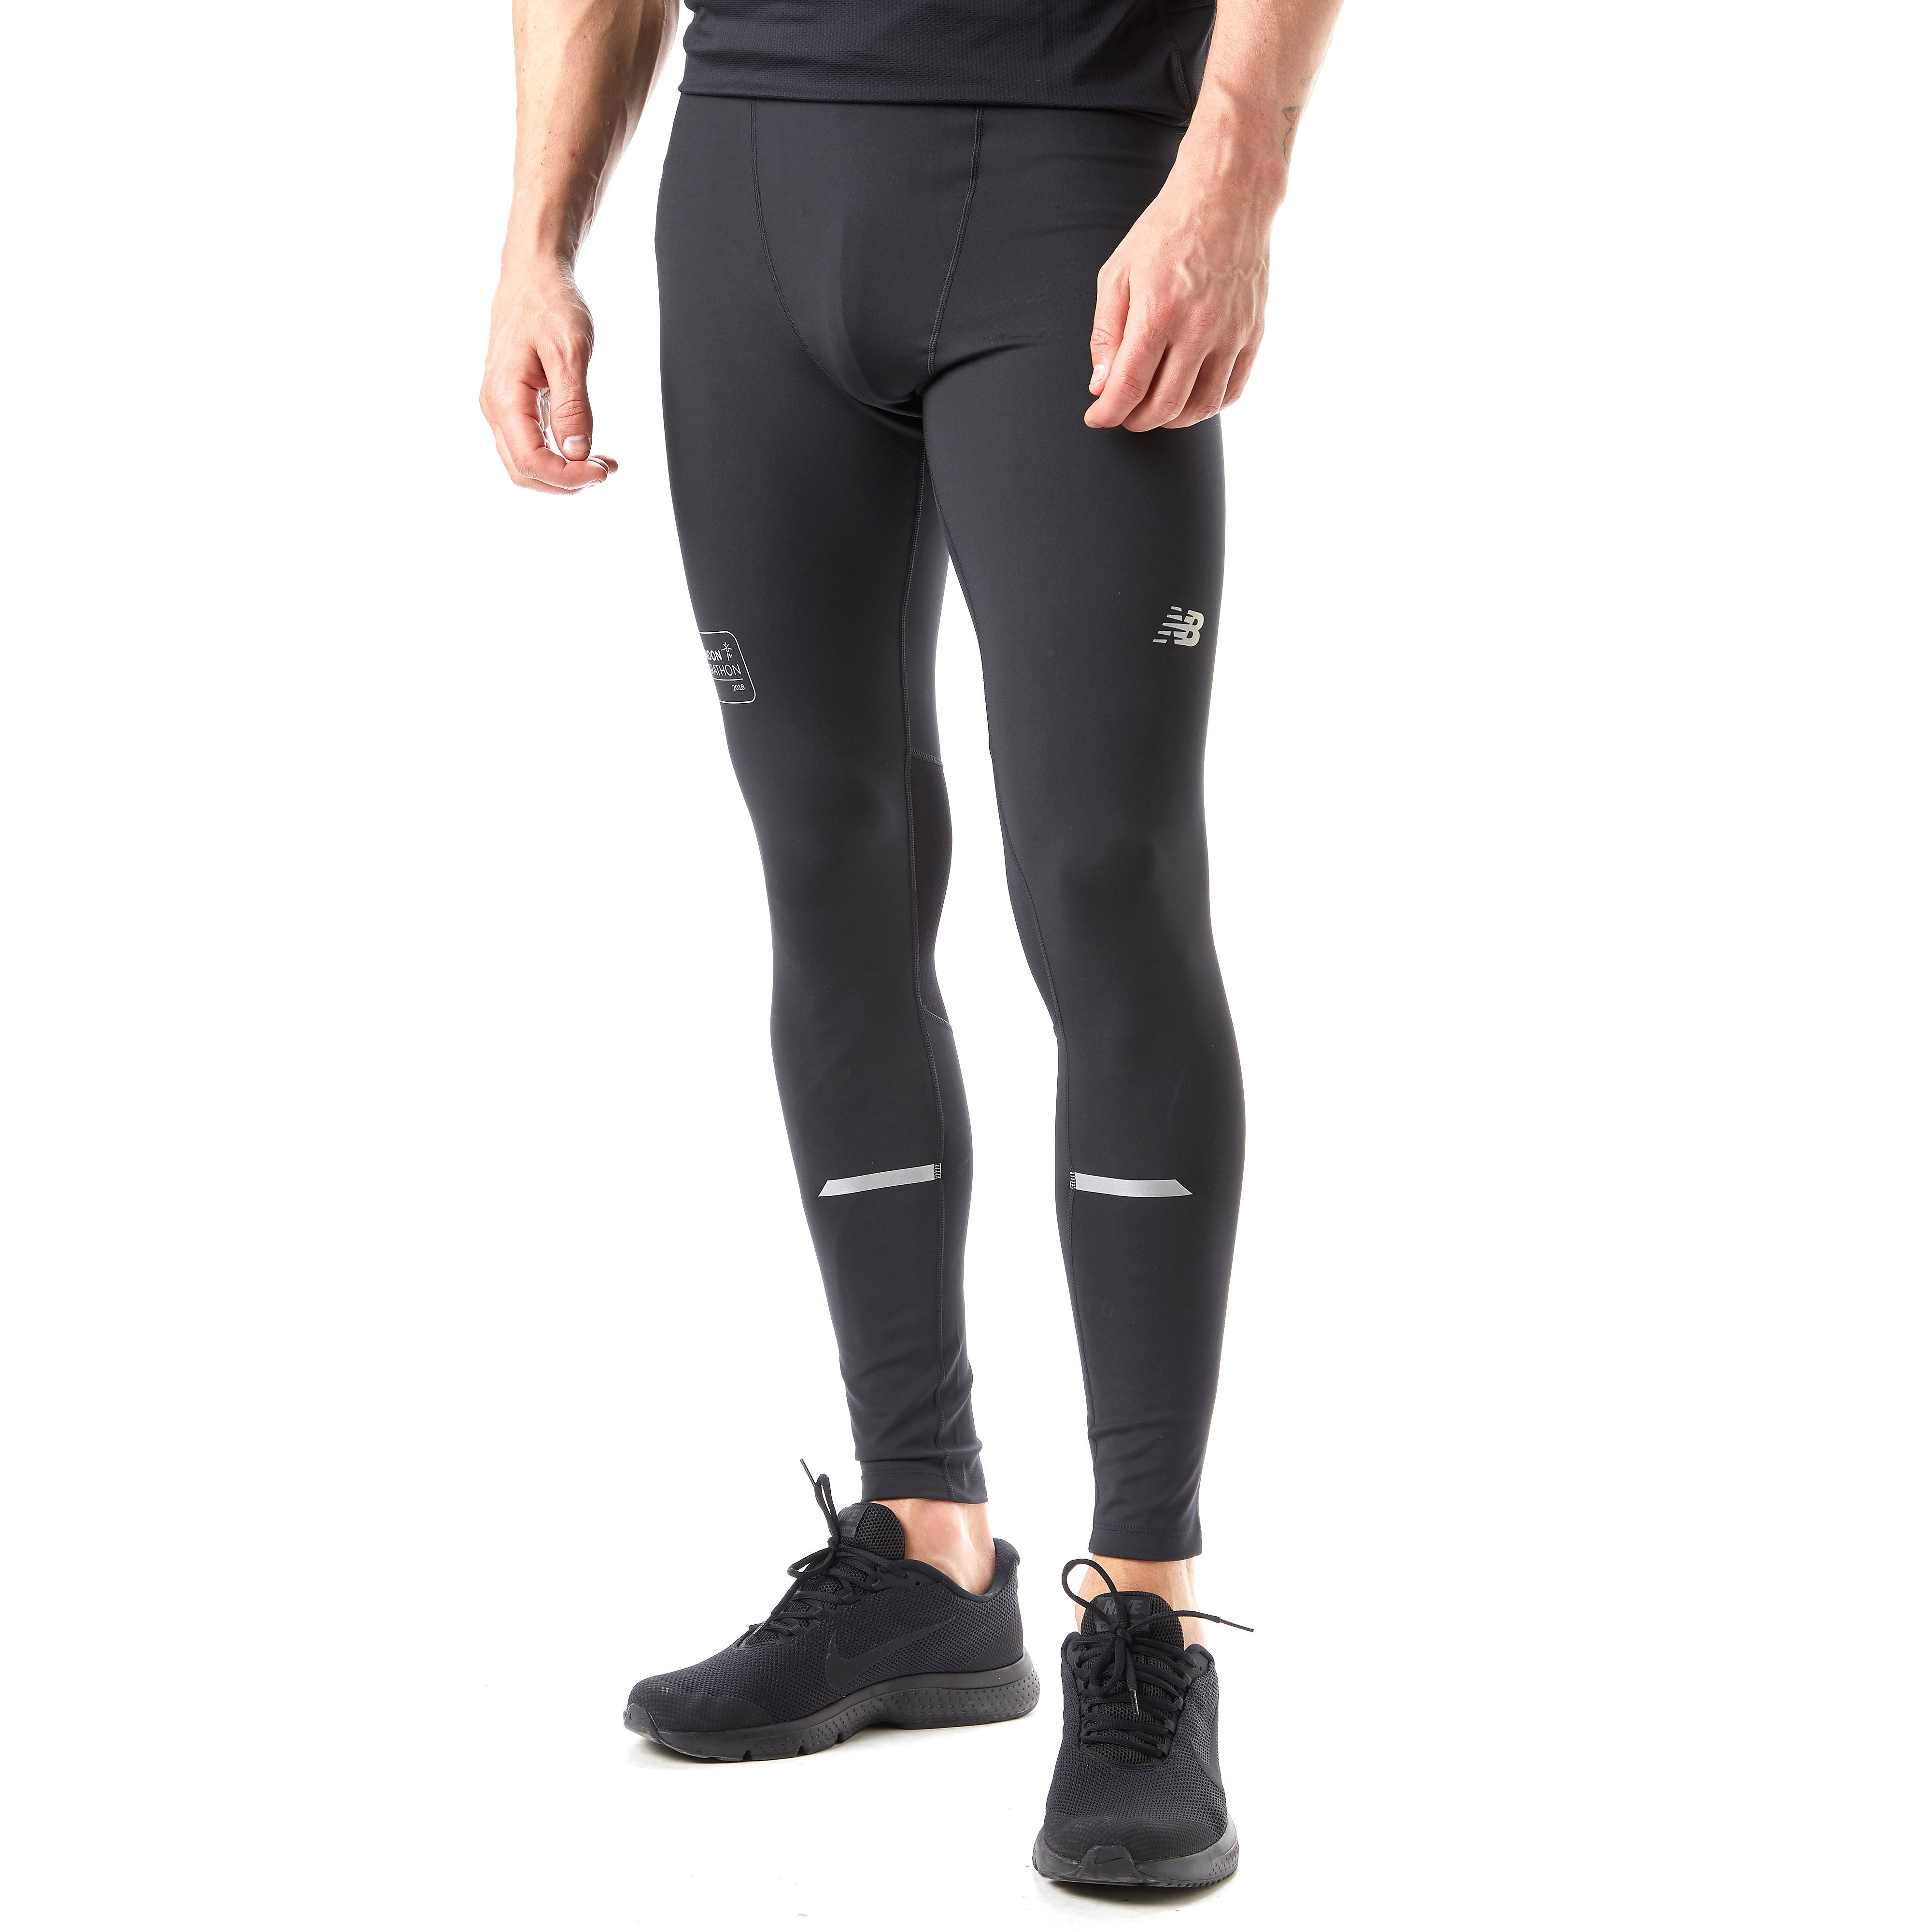 New Balance London Marathon Edition Impact Men's Running Tights